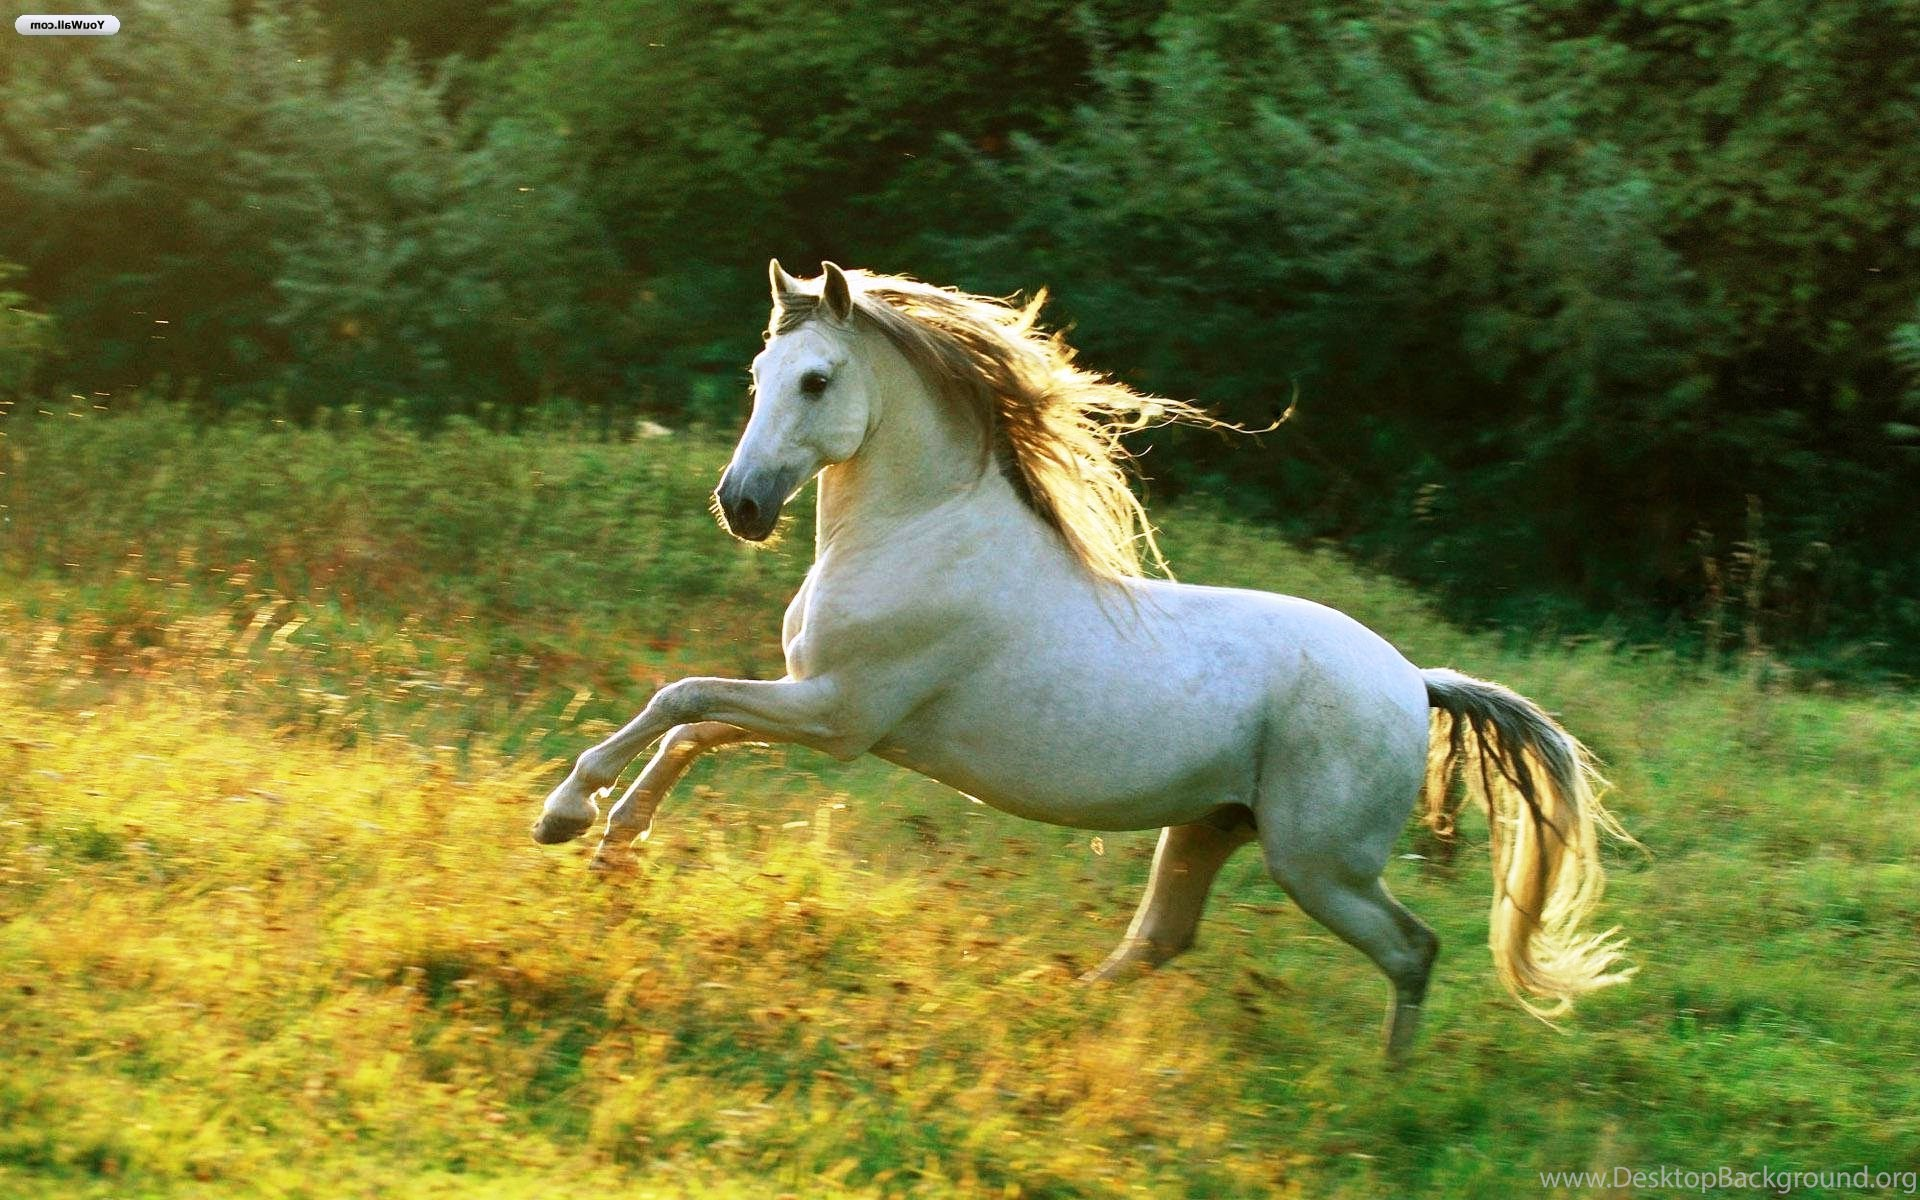 White Horse Running 1920x1200 Hd Wallpapers And Free Stock Photo